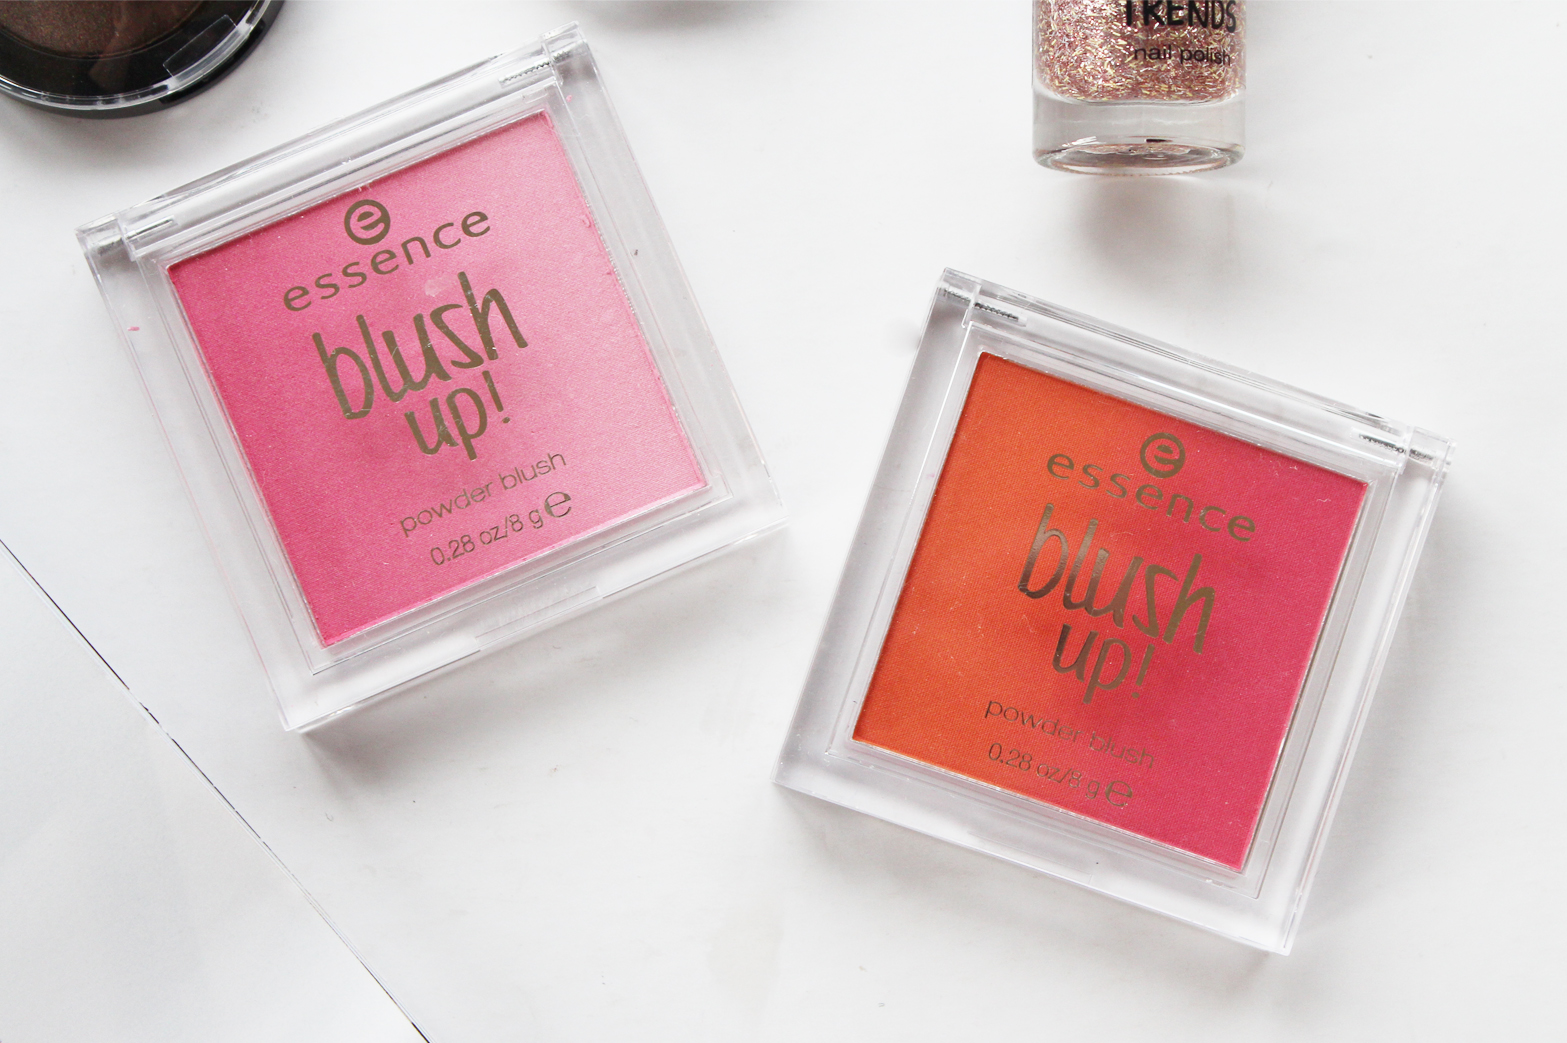 ESSENCE | Brand Overview - Product Reviews + Swatches - Blush Up! Ombre Blushes - CassandraMyee